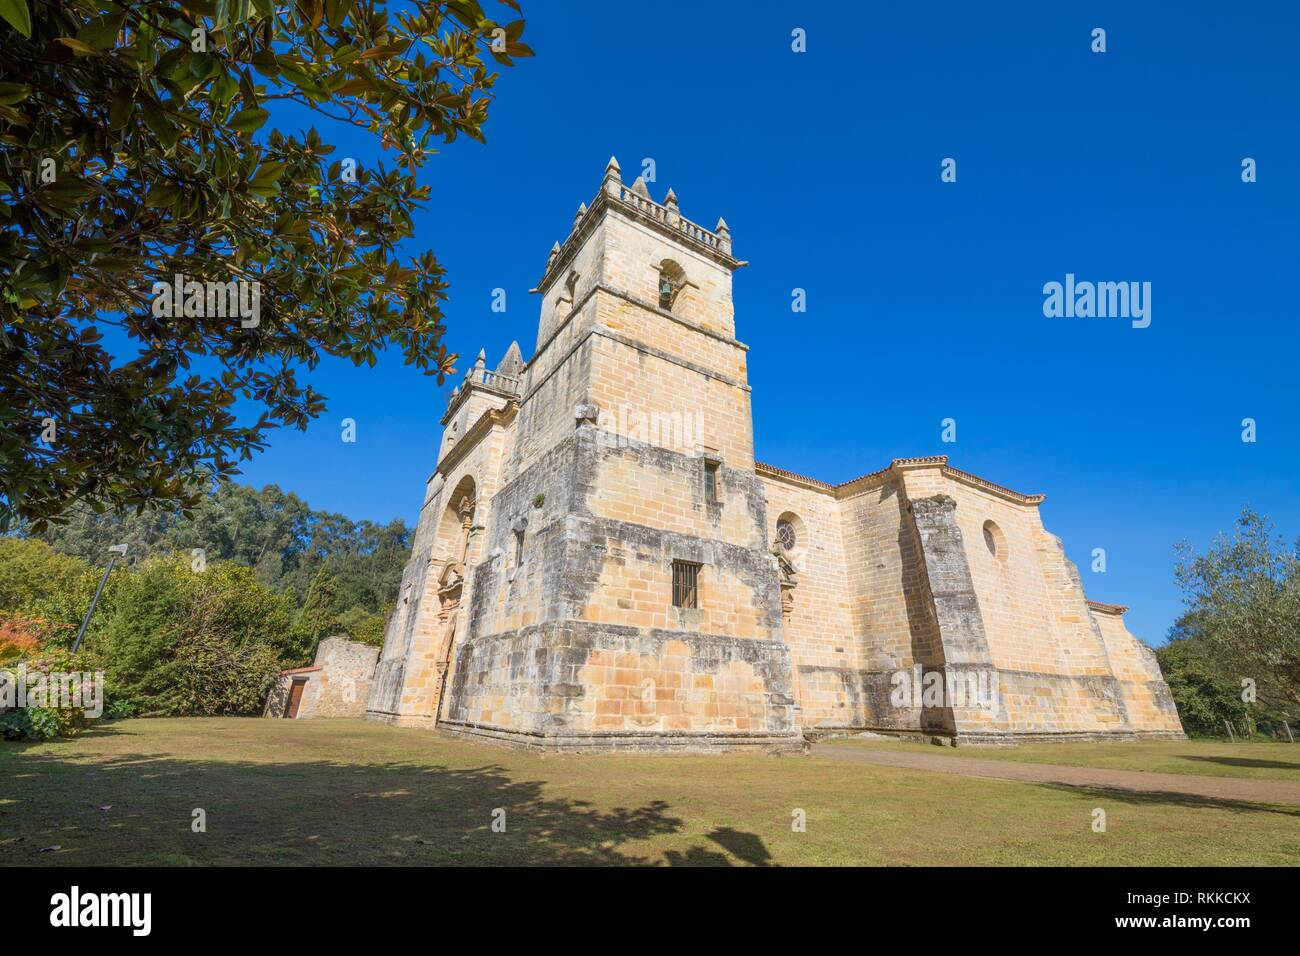 corner of church of Saint Martin de Tours, colonial baroque style monument from 1768, in Ciguenza, Alfoz Lloredo, Cantabria, Spain, Europe. - Stock Image